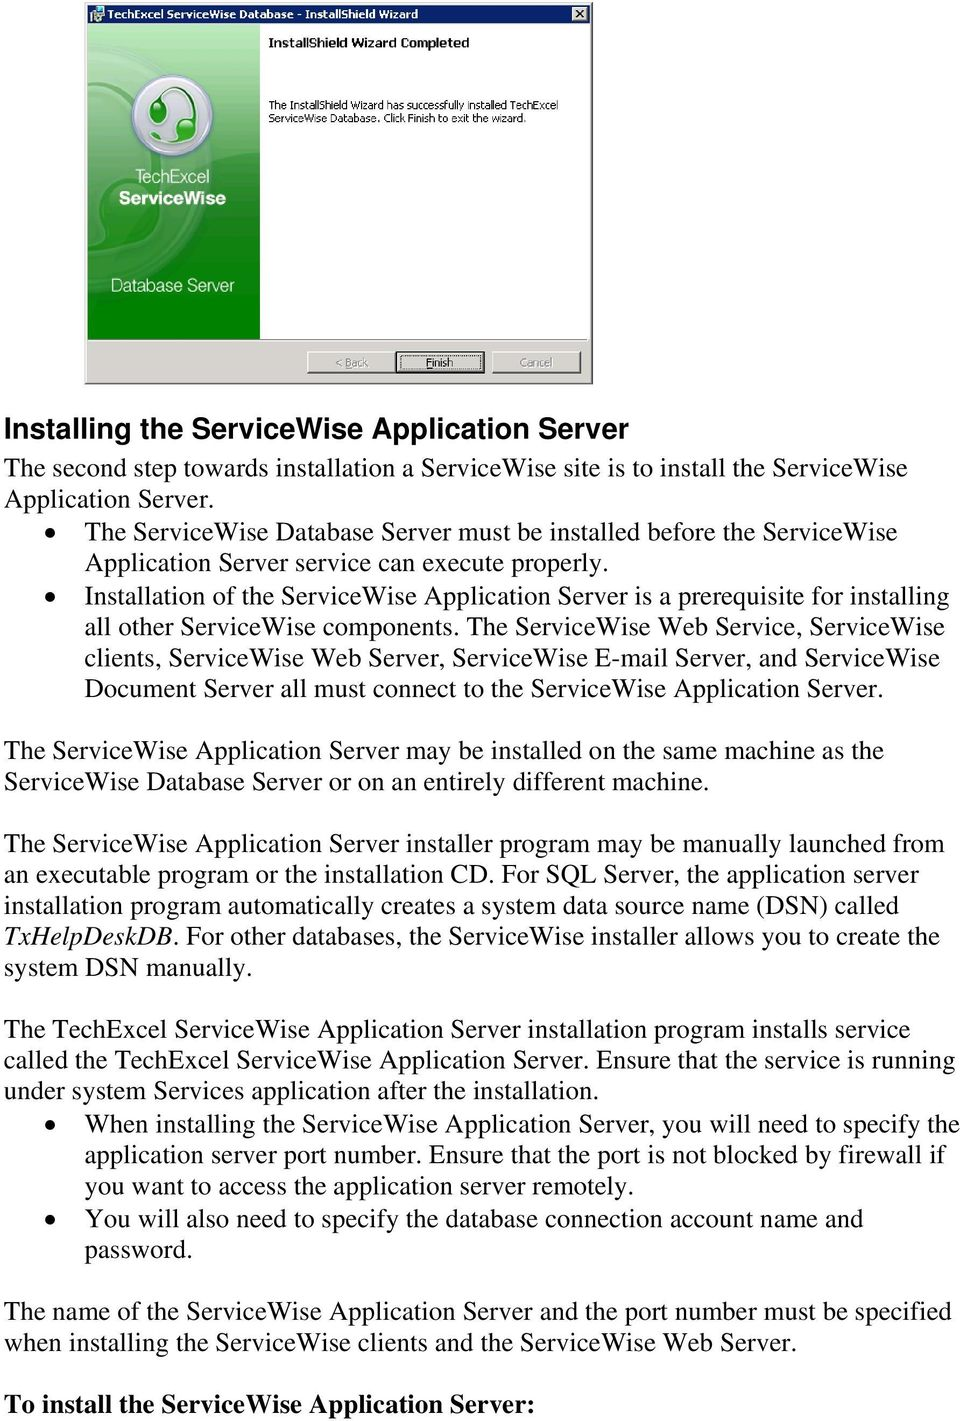 Installation of the ServiceWise Application Server is a prerequisite for installing all other ServiceWise components.